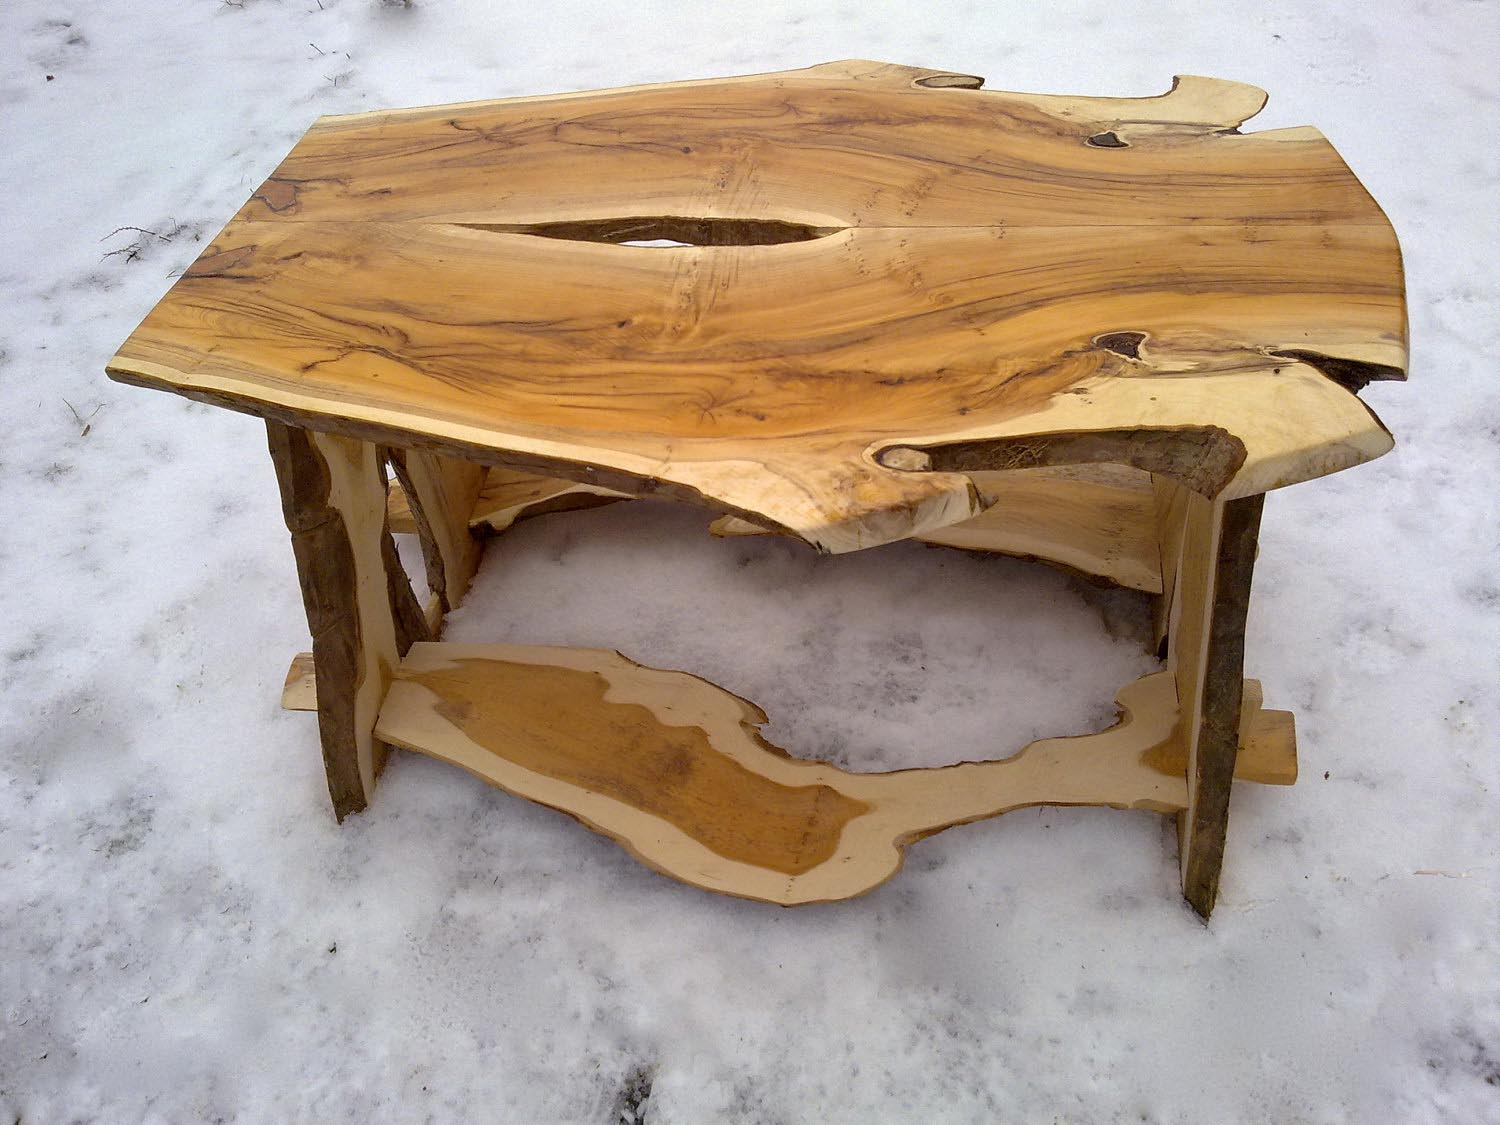 Unique Wood Coffee Tables Unique Wood Coffee Table  Coffee Table Design Ideas